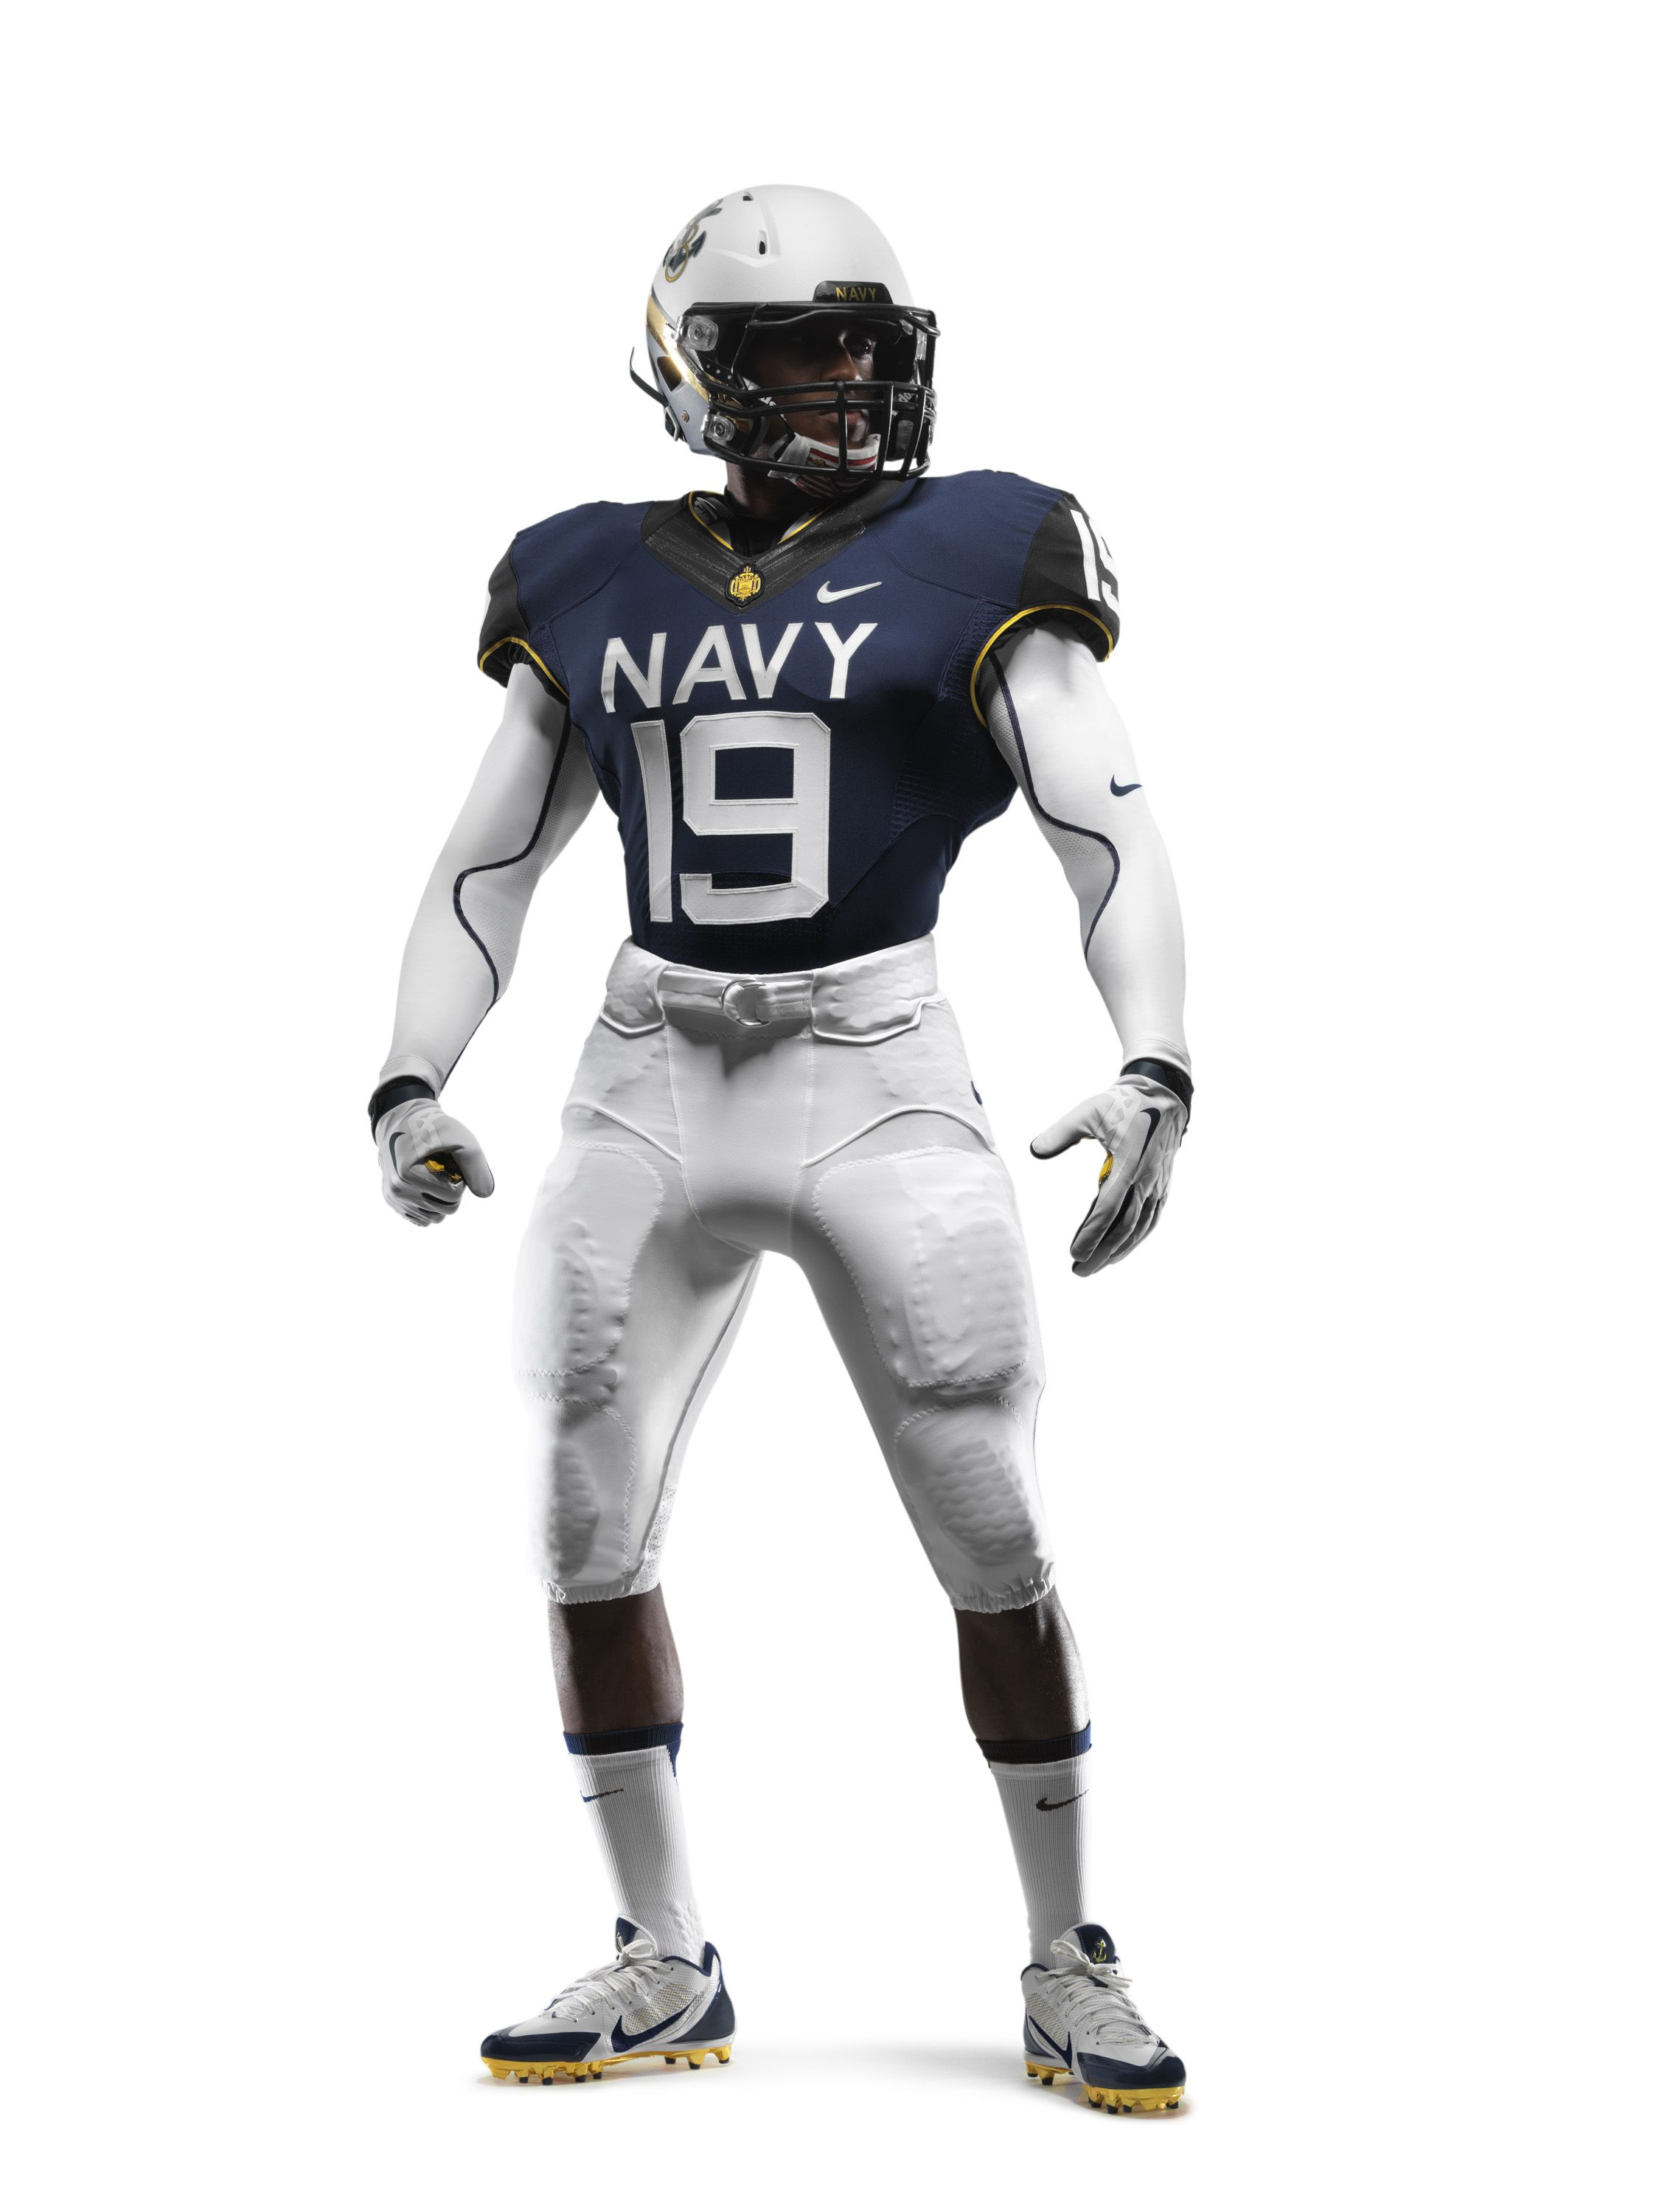 The Front Of The 2013 Navy Uniform From Nike Go Navy Navy